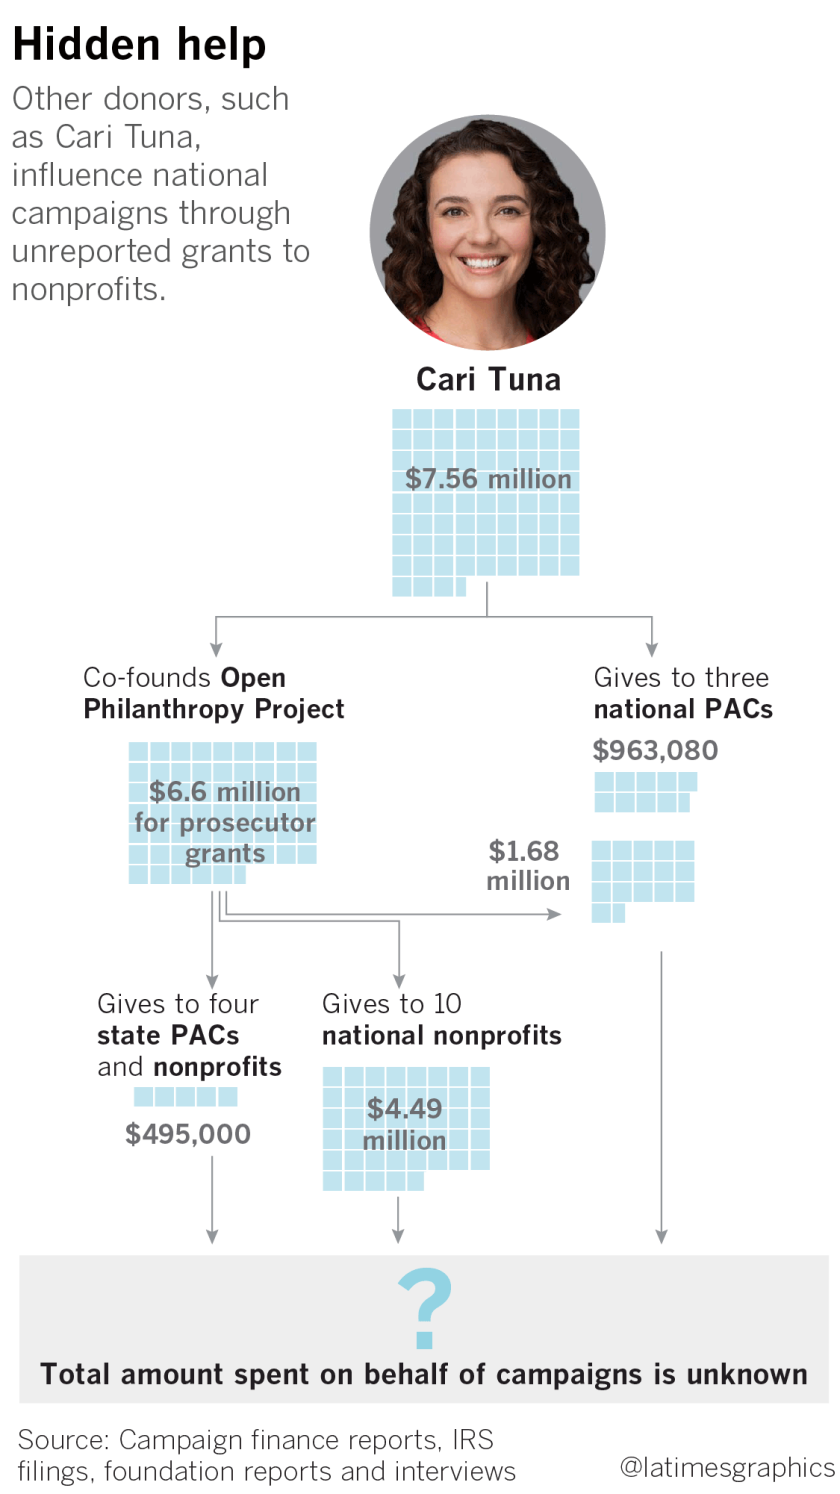 Other donors, such as Cari Tuna, influence national campaigns through unreported grants to nonprofits.